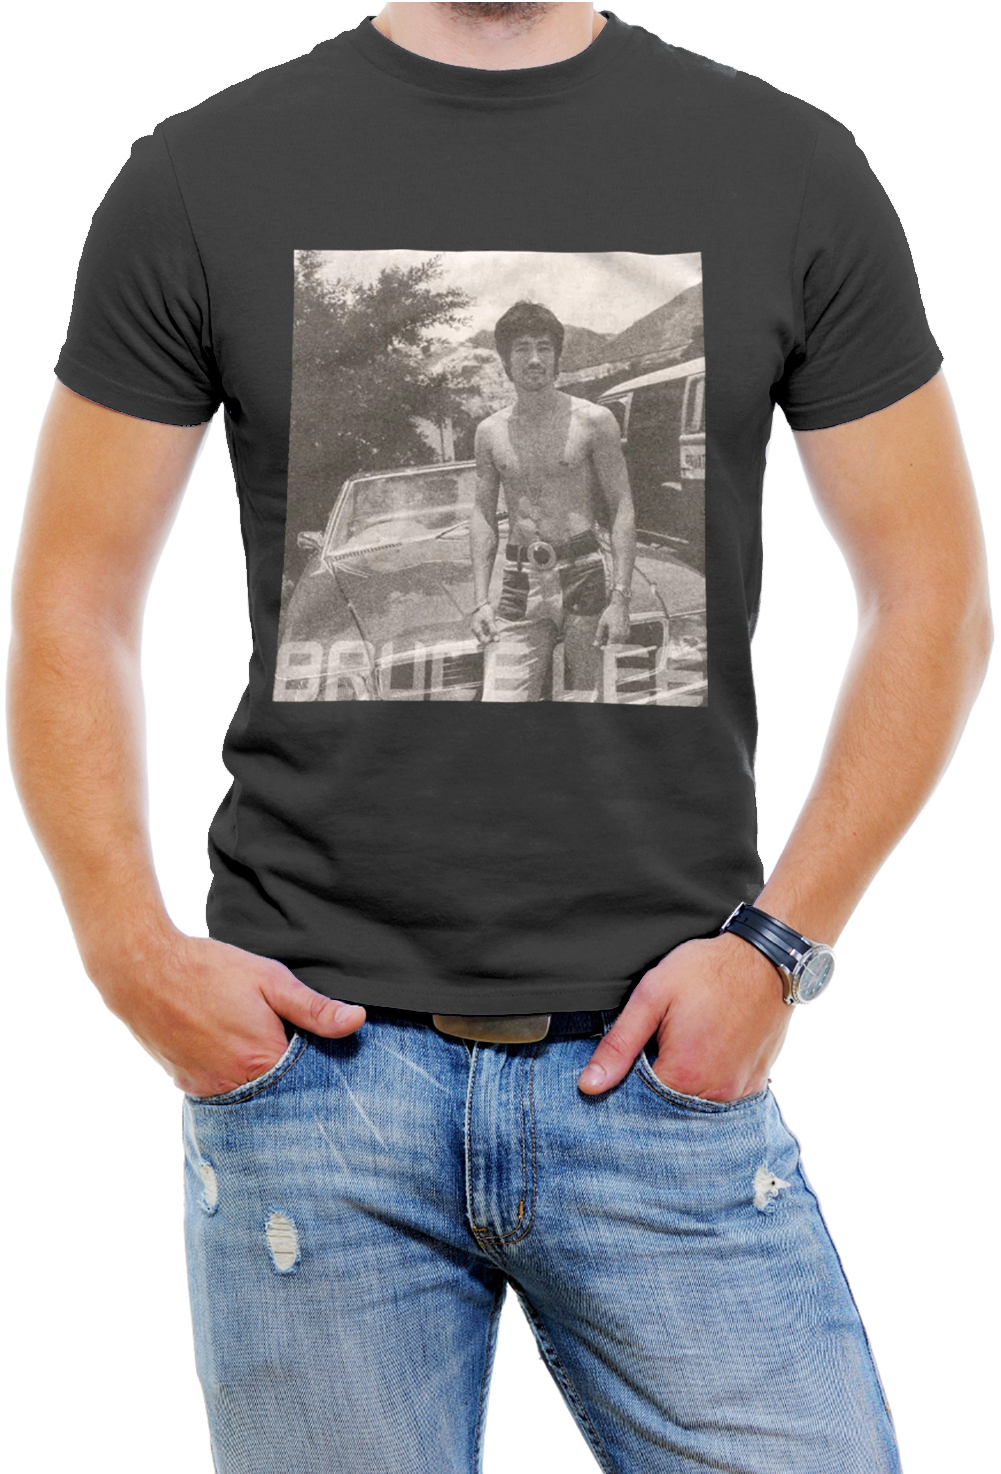 Classc Bruce Lee Black White Men T-Shirt